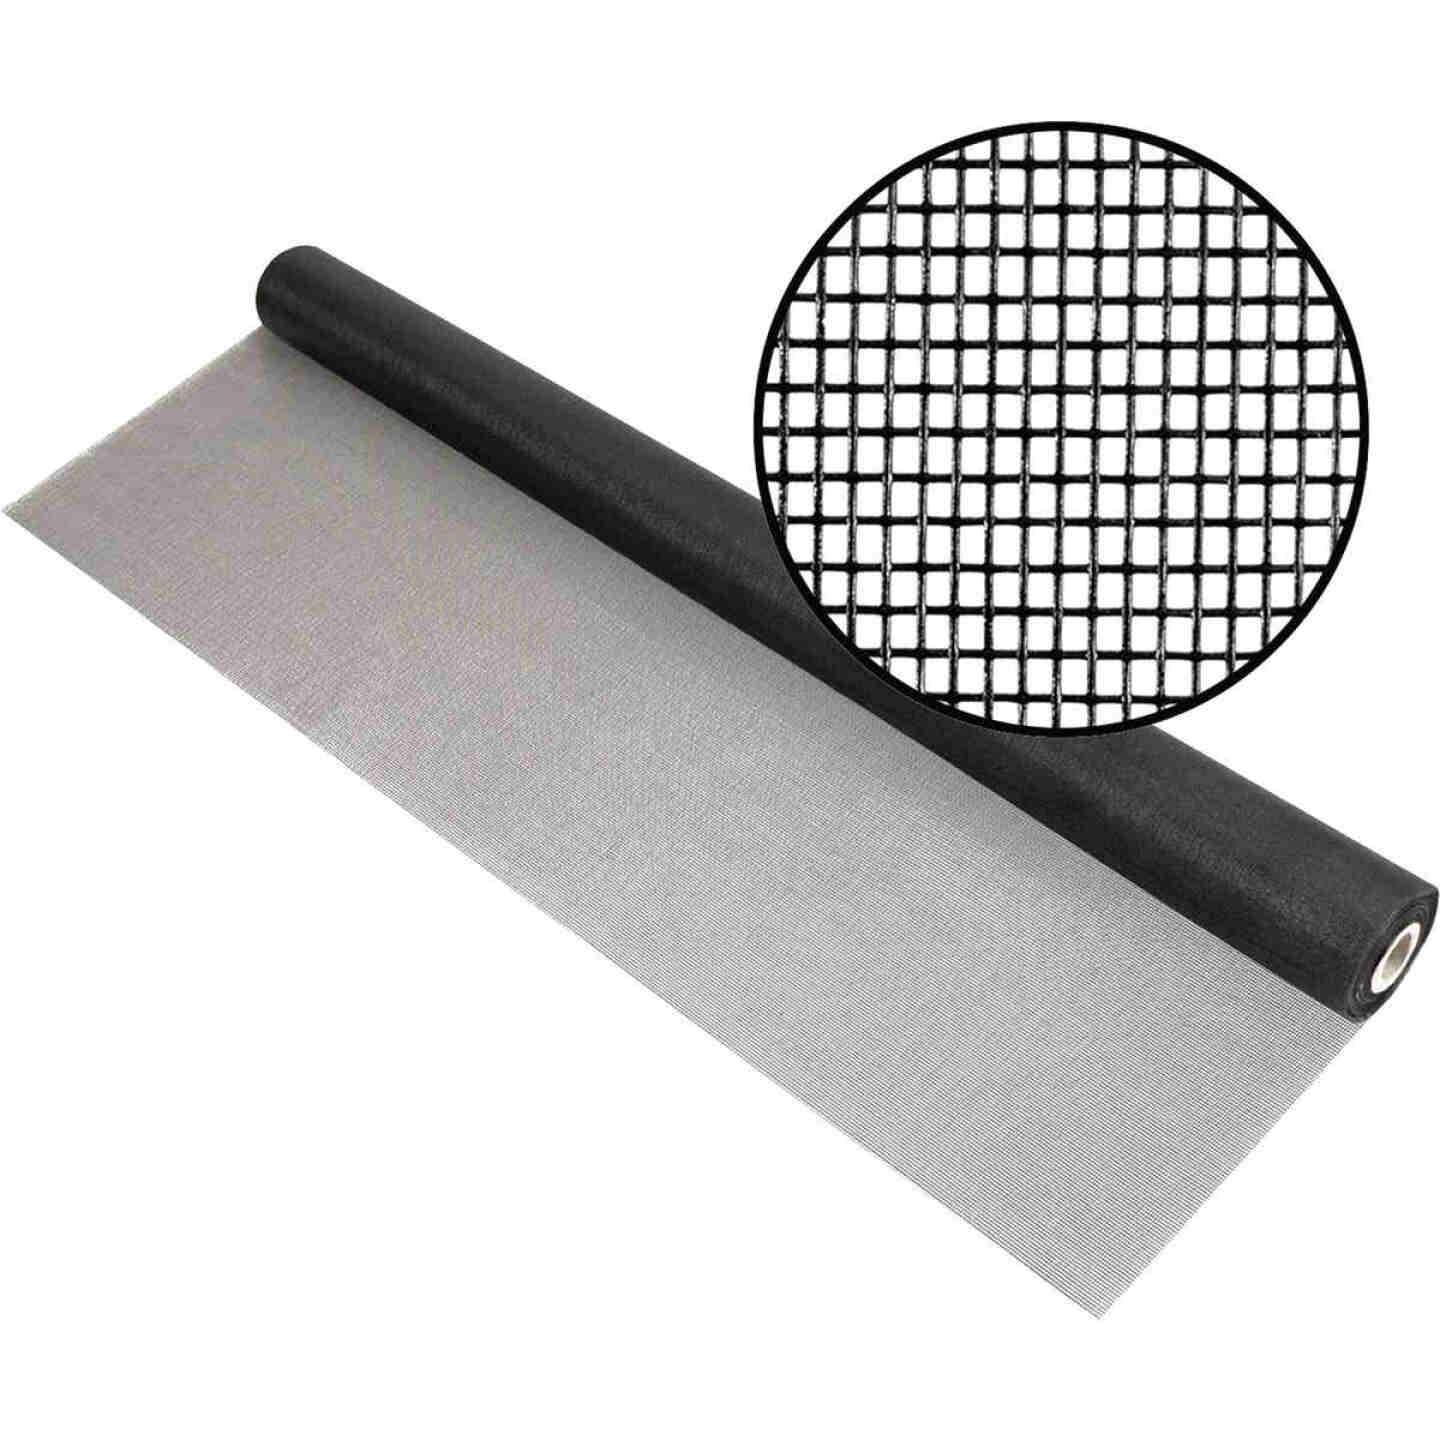 Phifer 48 In. x 100 Ft. Charcoal Fiberglass Mesh Screen Cloth Image 1